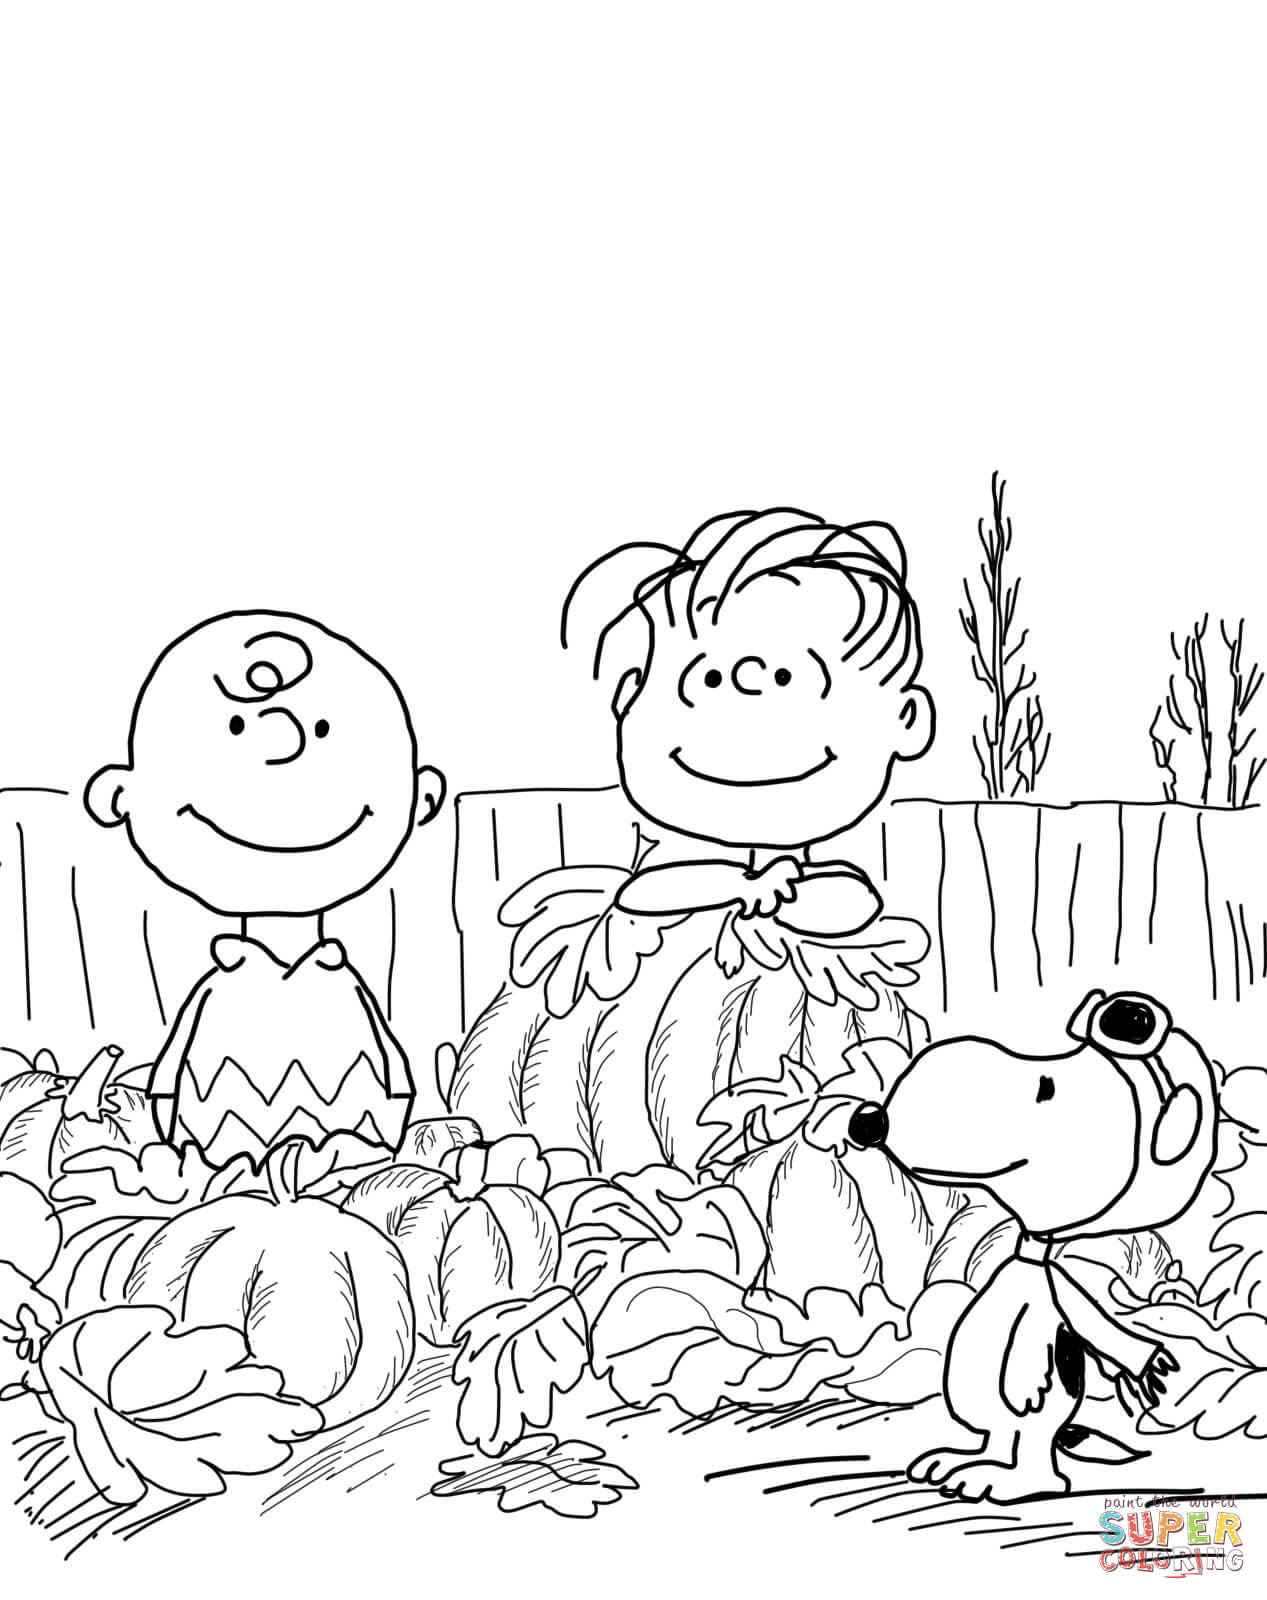 Great Pumpkin Charlie Brown Coloring Page | Free Printable Coloring - Free Printable Charlie Brown Halloween Coloring Pages